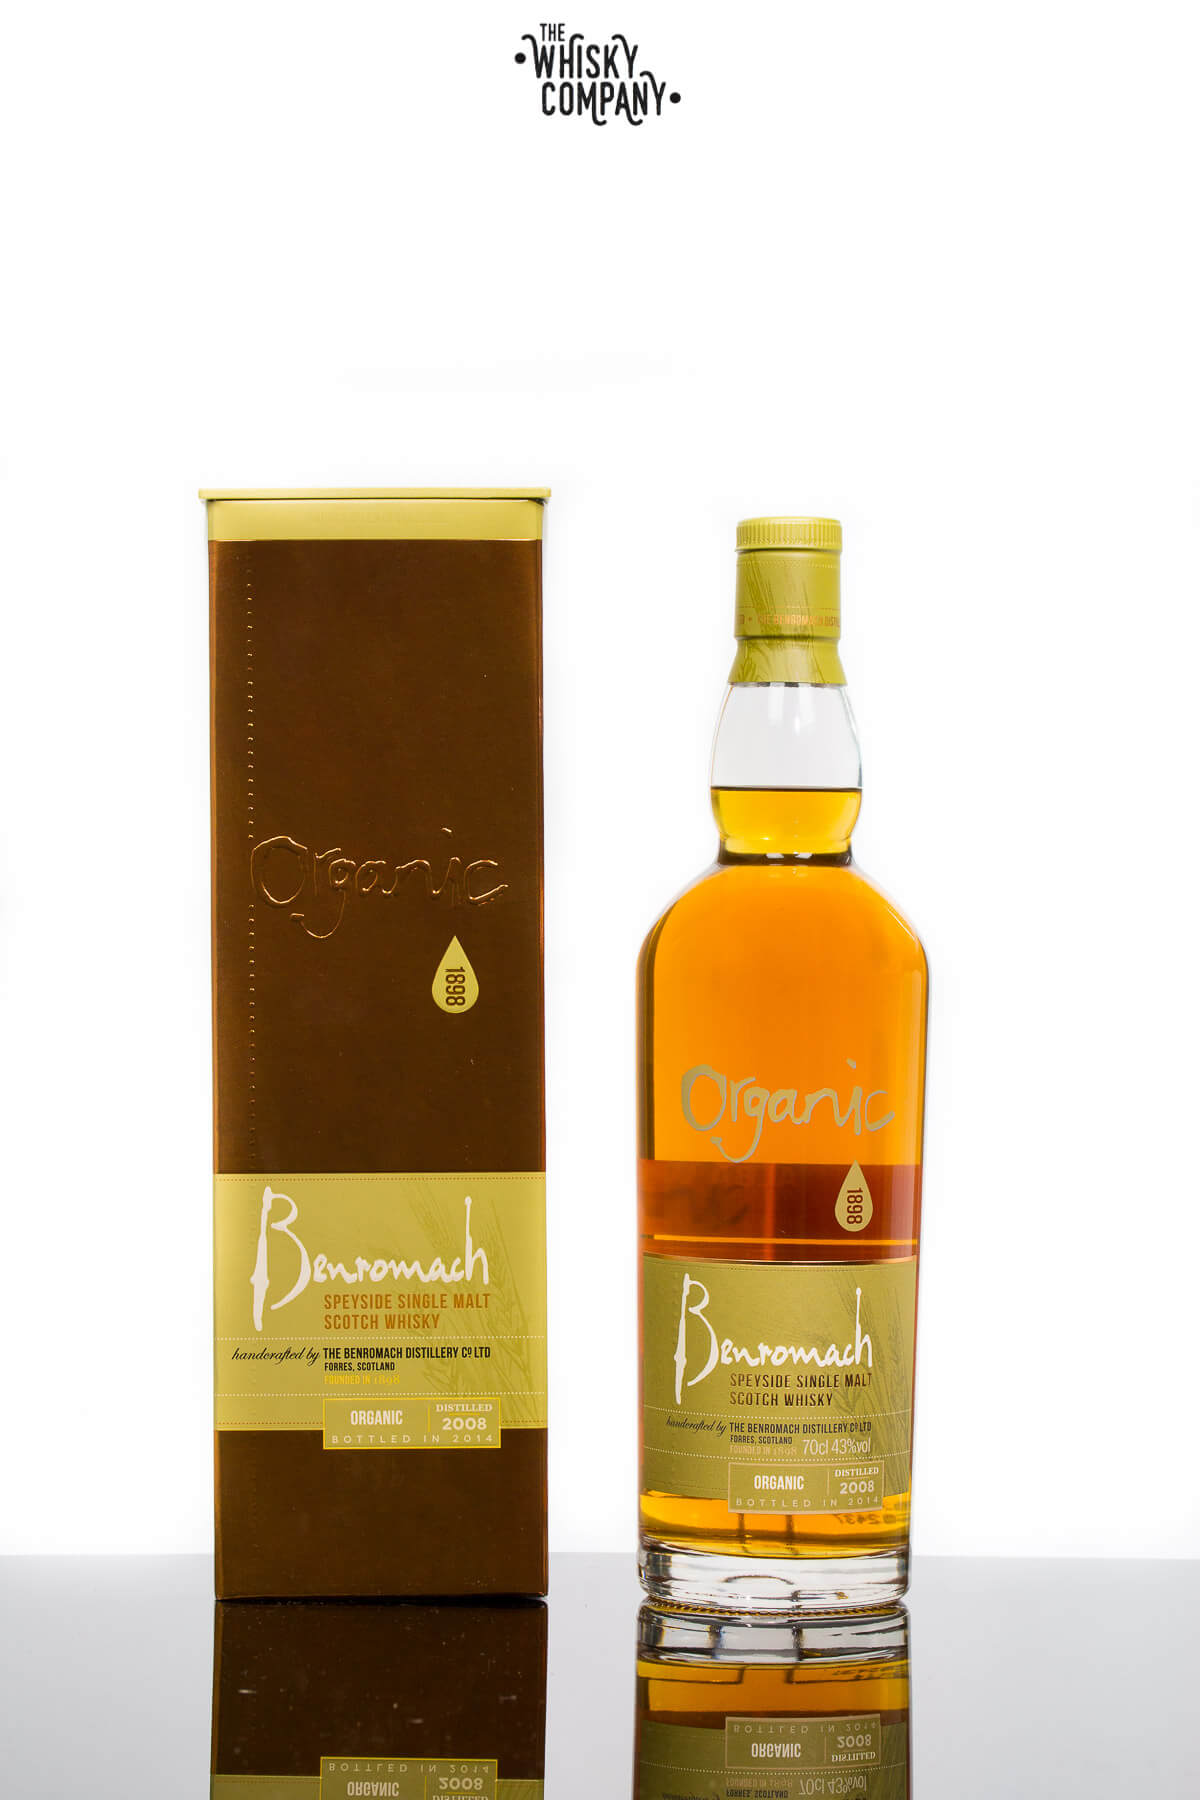 Benromach Organic Speyside Single Malt Scotch Whisky (700ml)